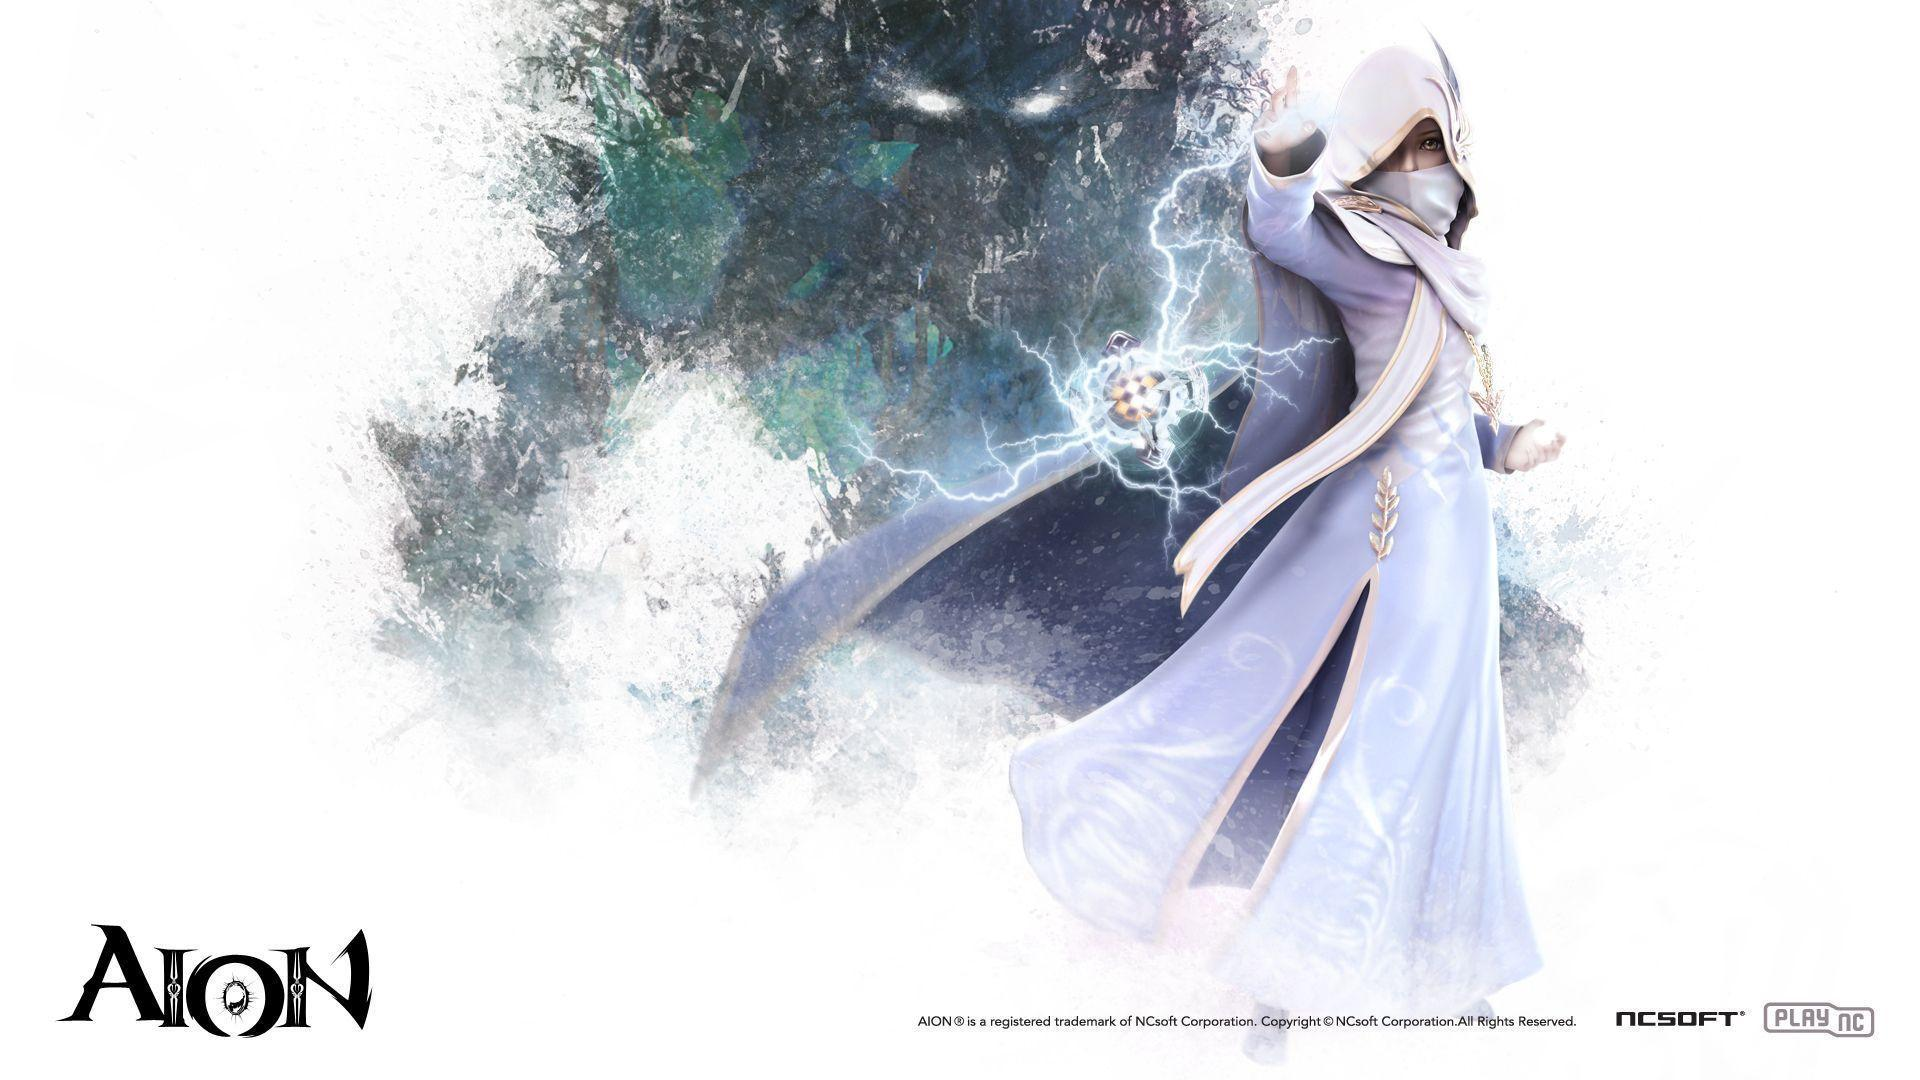 Aion 2.5 Class Wallpaper - Gladiator 1680x1050 - Aion Photo ...